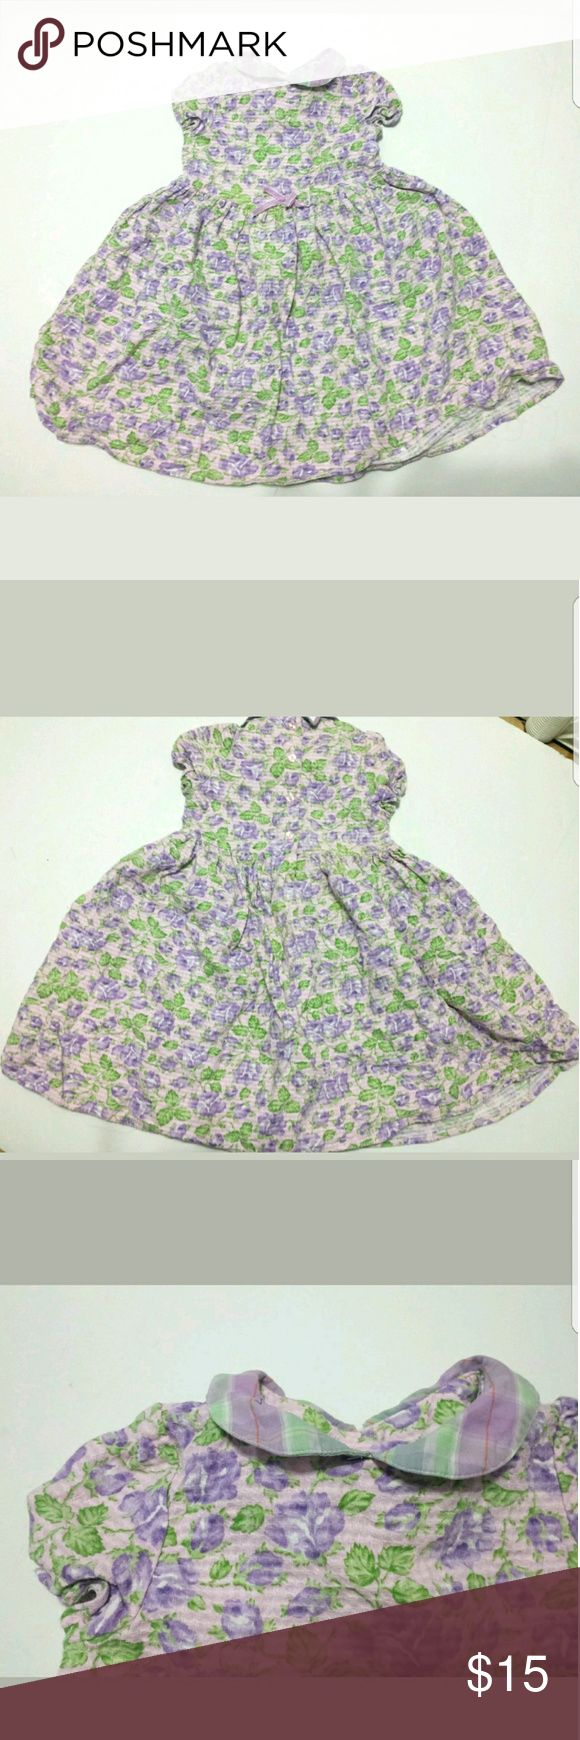 Girls Purple Floral Dress 6x B. LULU Boutique Girls size 6x B. Lulu Boutique Floral dress in Purple/ Lilac Flowers with light green leaves. Vintage looking in good condition. Please take a look at all the pictures LULU B. Dresses